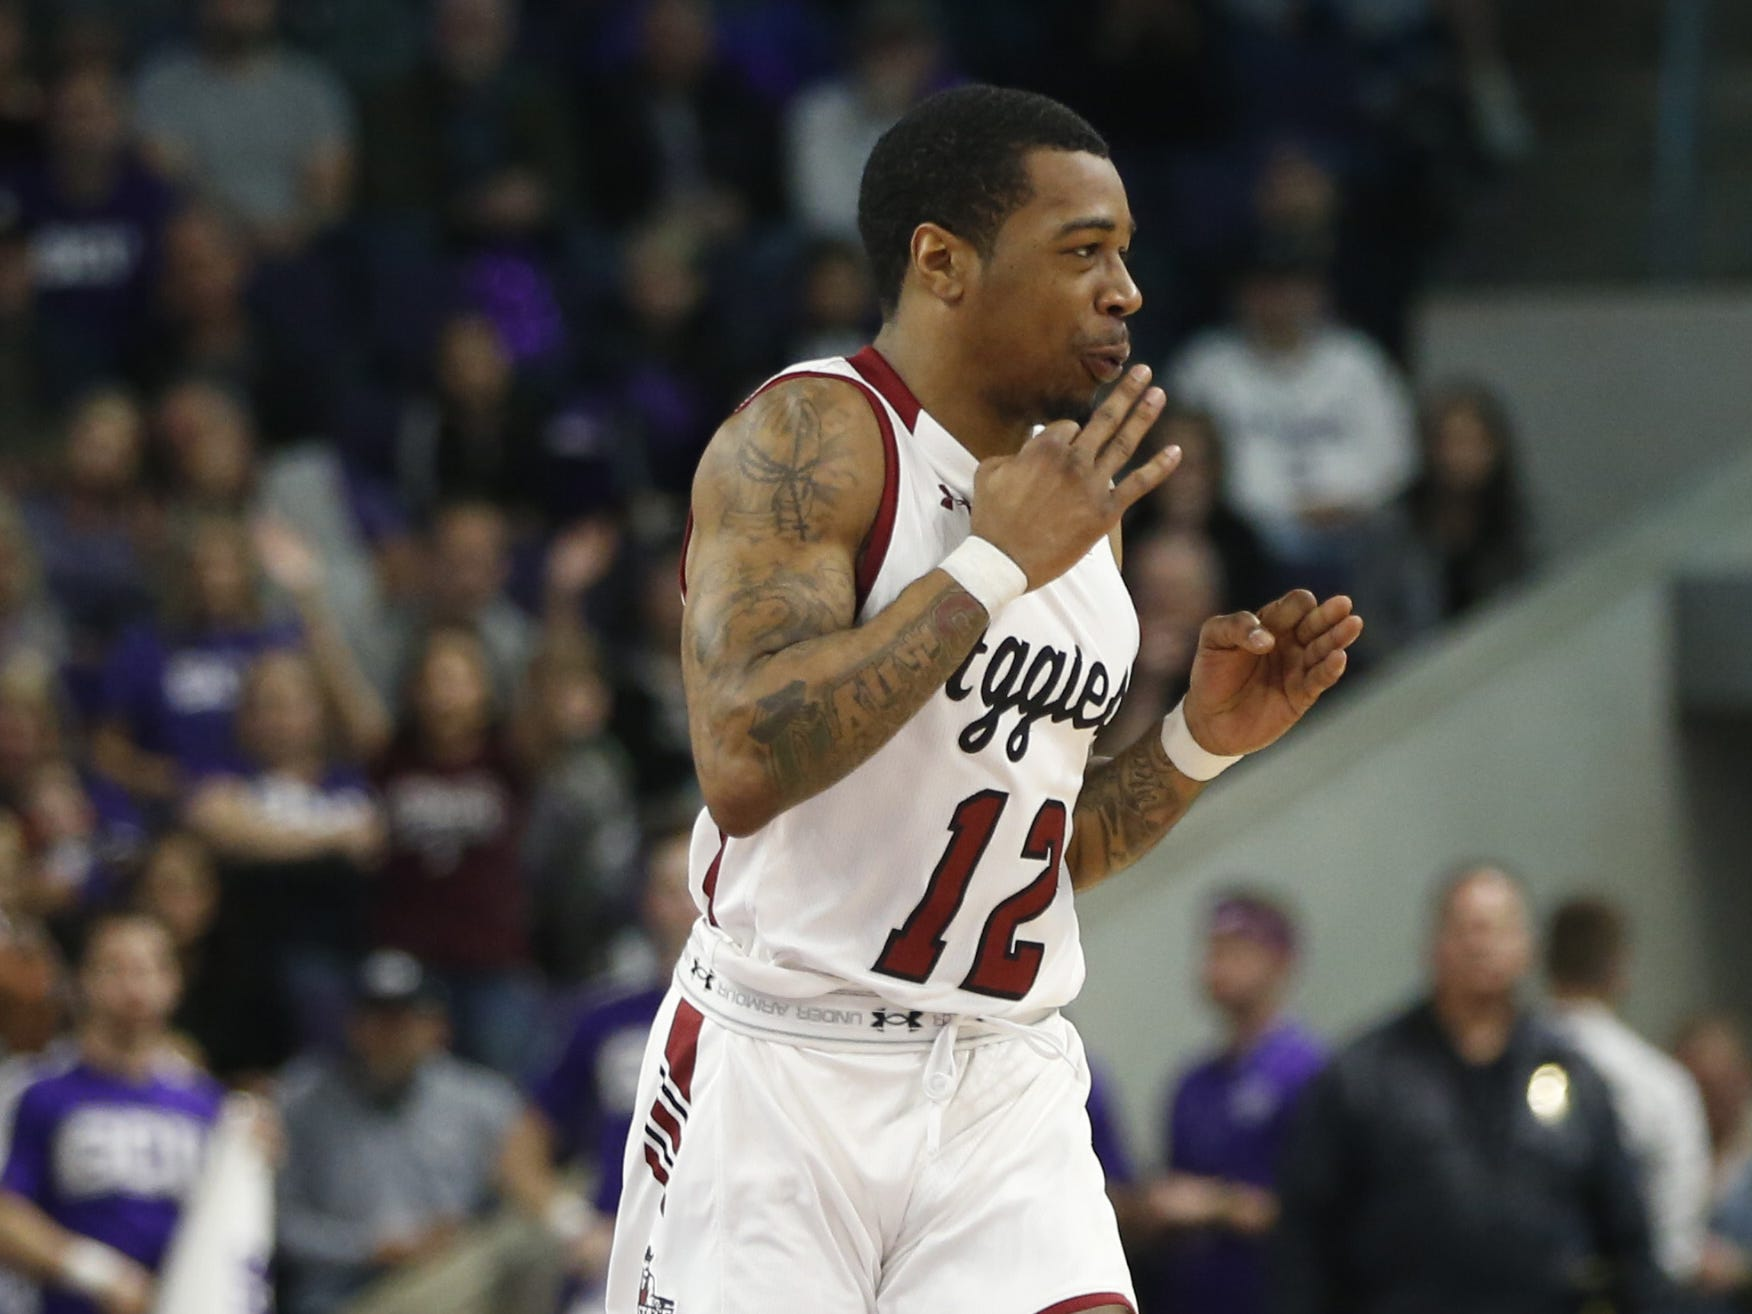 New Mexico State's AJ Harris (12) blows on his fingers after hitting a three against GCU during the first half at Grand Canyon University Arena in Phoenix, Ariz. on February 9, 2019.